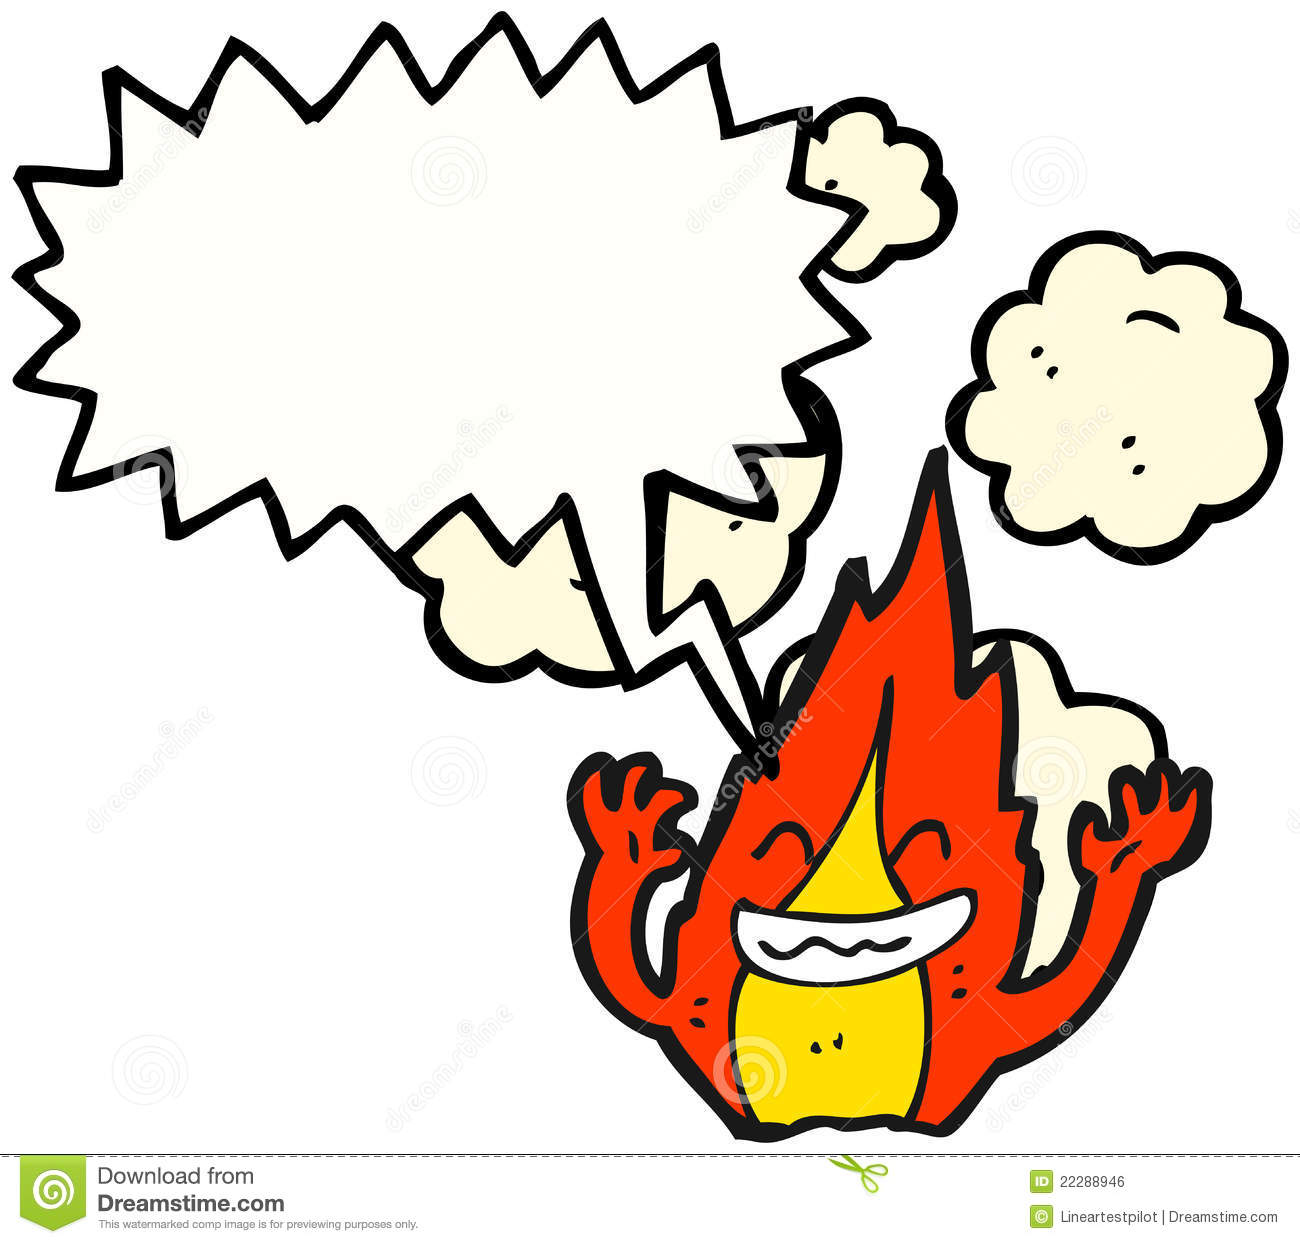 Cartoon Characters Laughing : Laughing fire cartoon character royalty free stock image